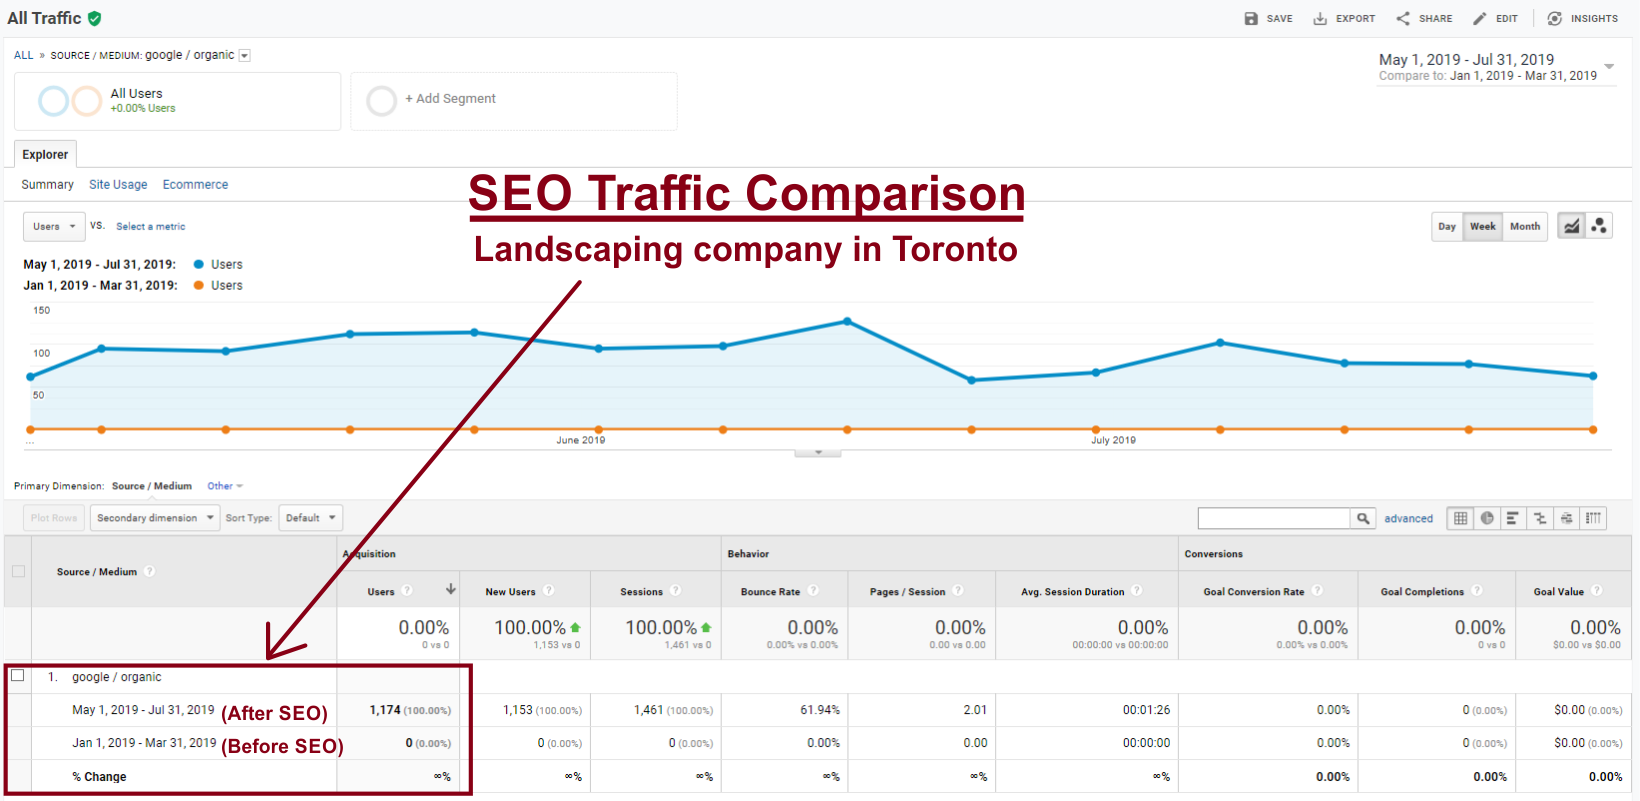 Wedelivergravel-toronto-seo-traffic-report-comparison